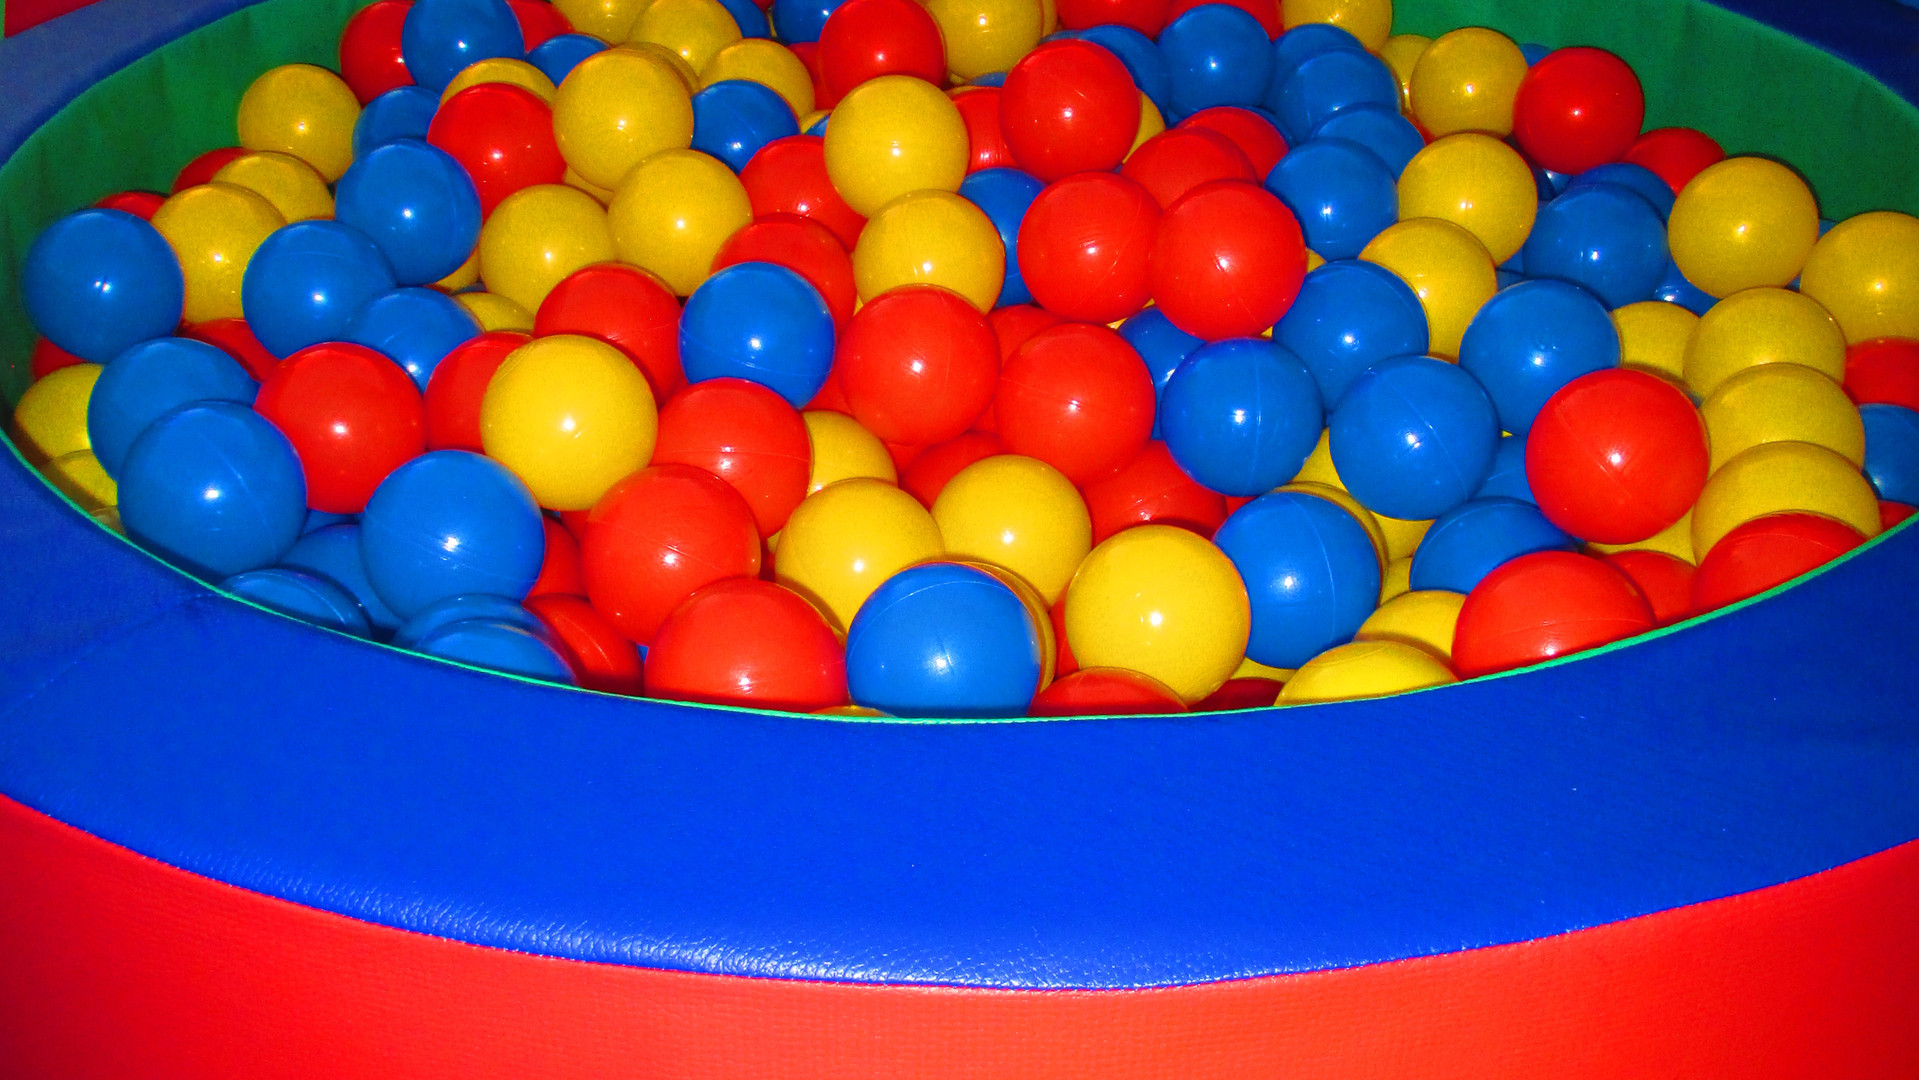 Ball pit to stimulate the senses and develop motor development